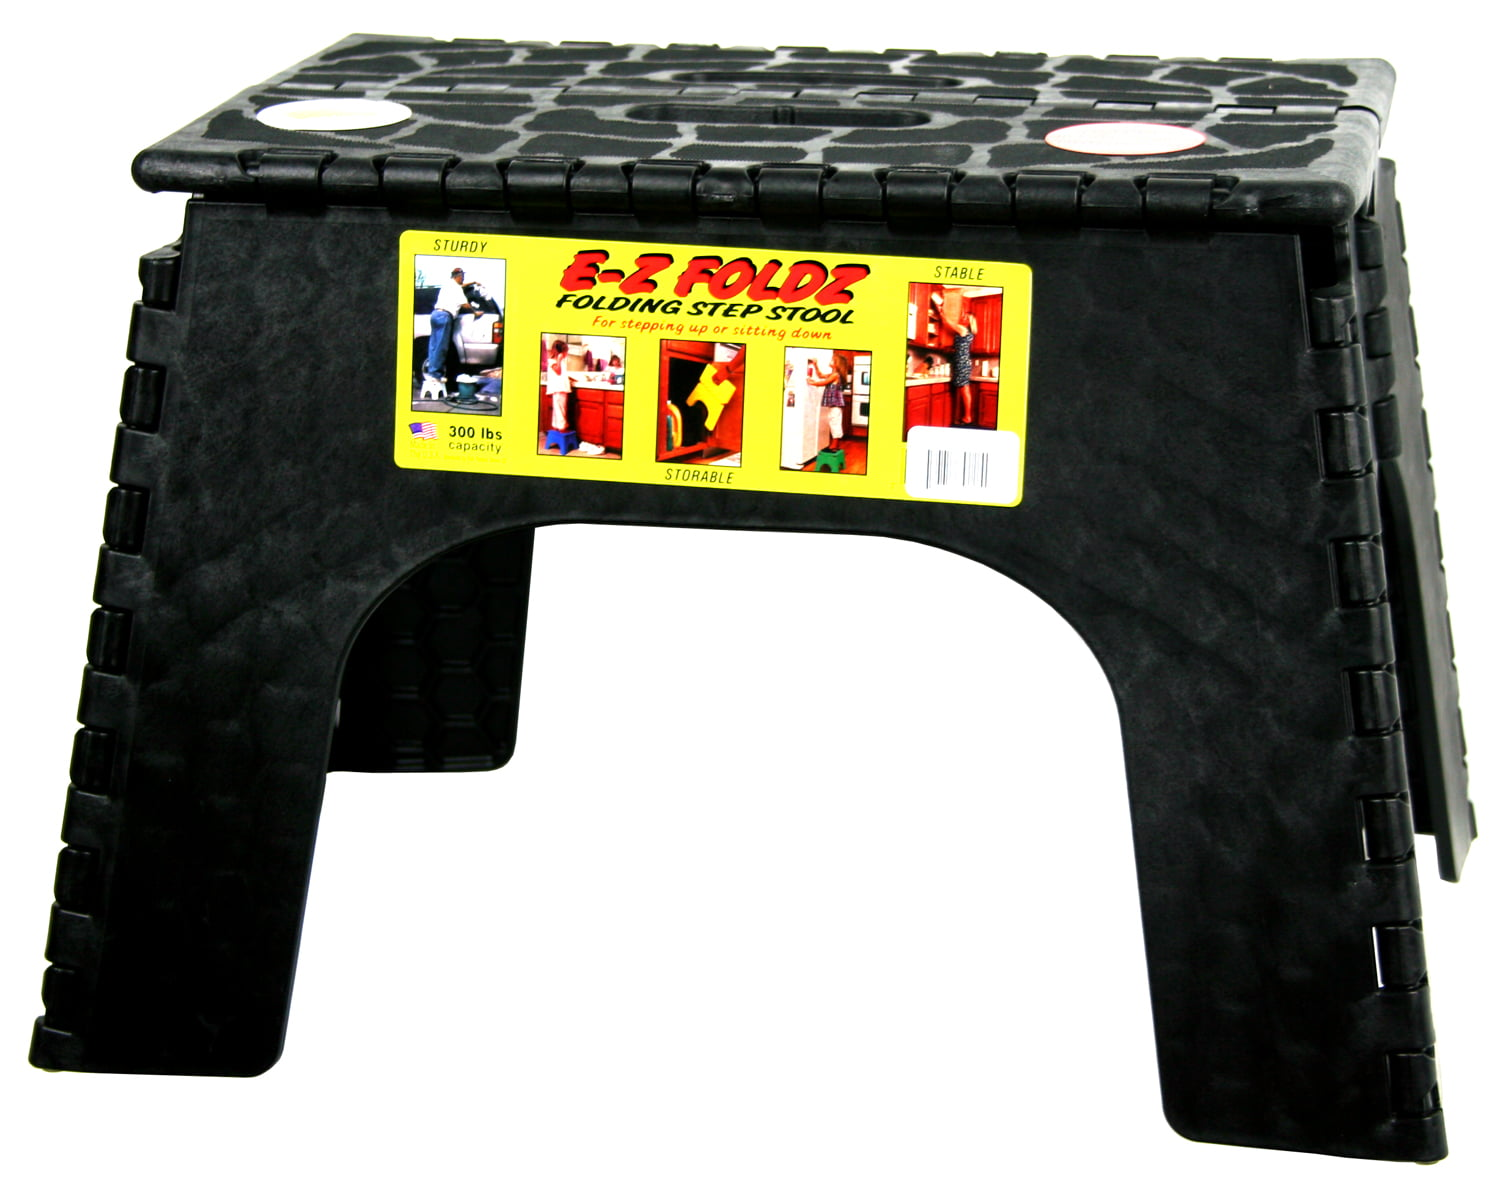 Swell Mainstays 12 Folding Step Stool Walmart Com Frankydiablos Diy Chair Ideas Frankydiabloscom